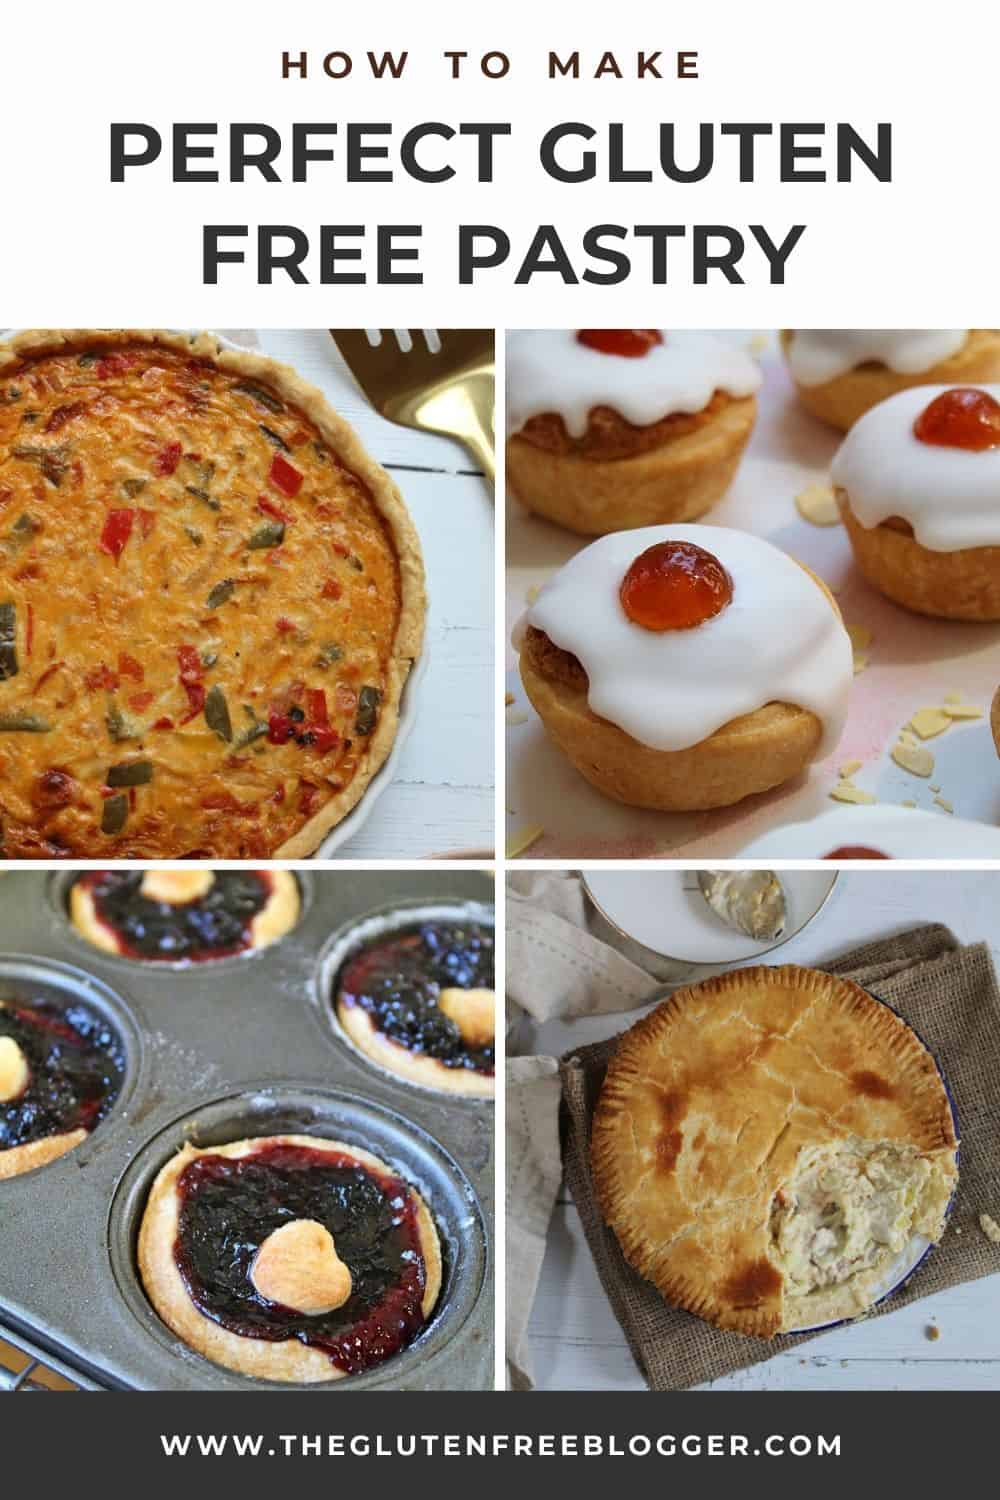 HOW TO MAKE GLUTEN FREE PASTRY STEP BY STEP GUIDE